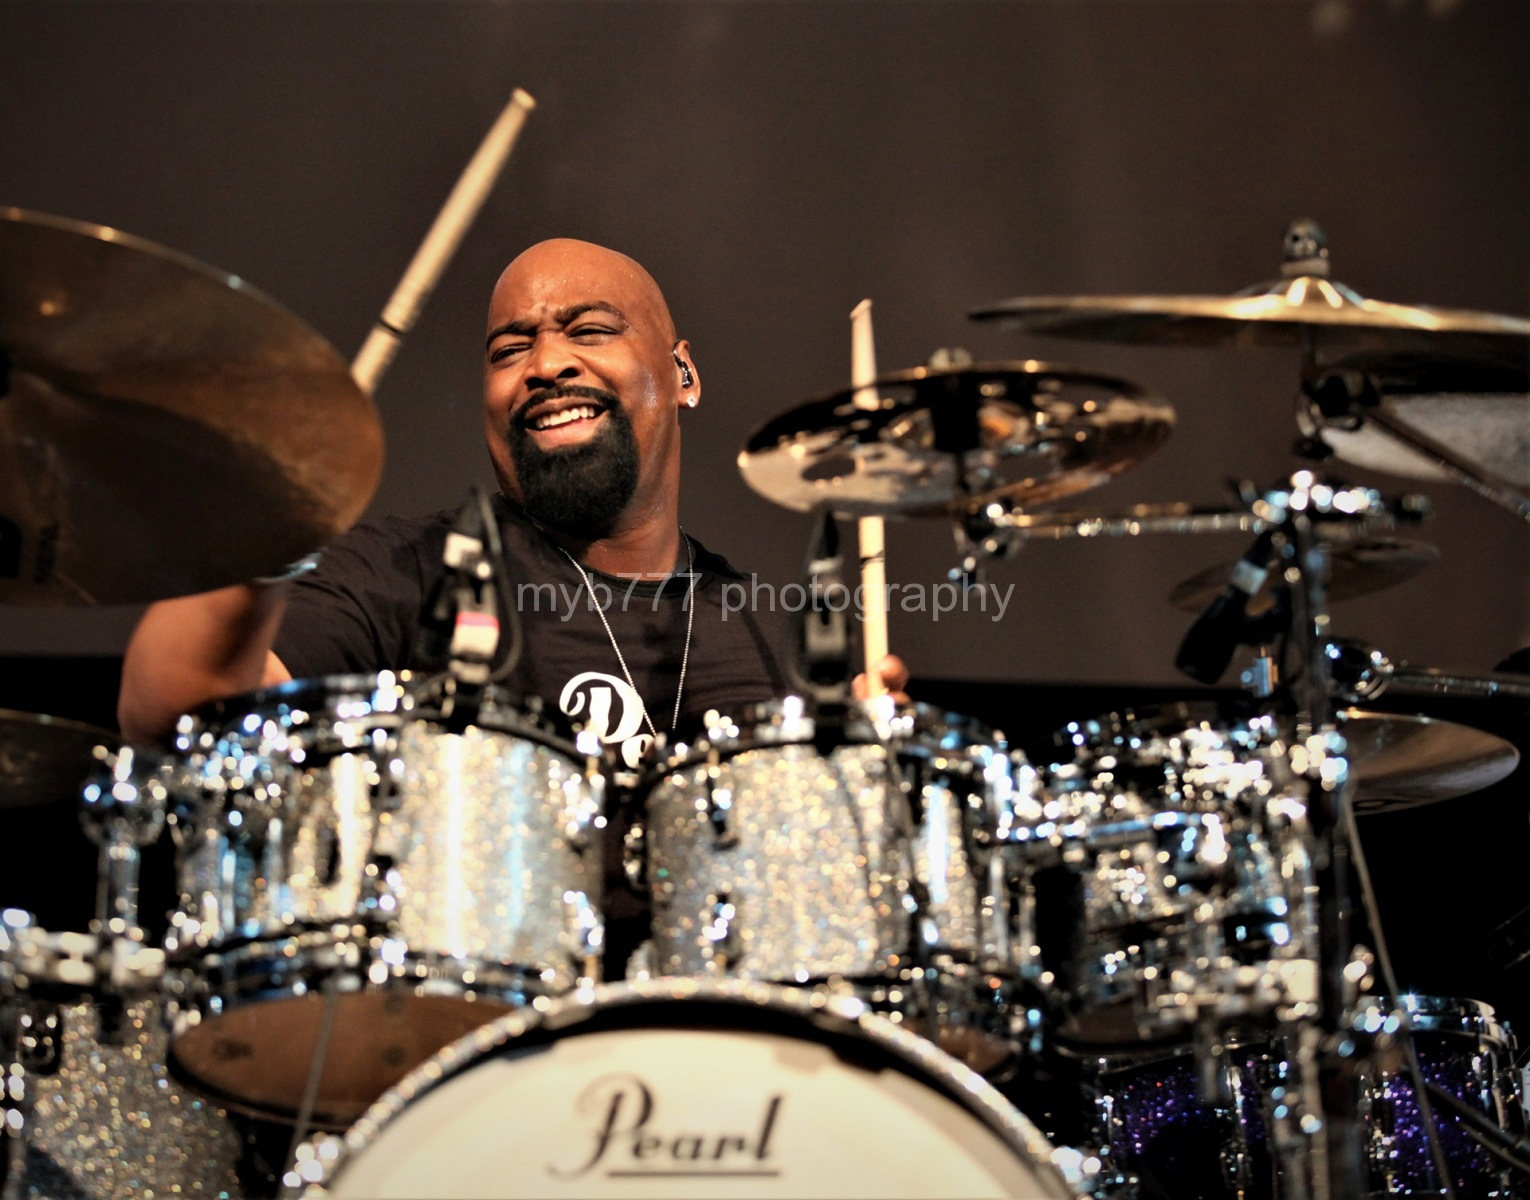 Drummer-Photography-by-myb777-39